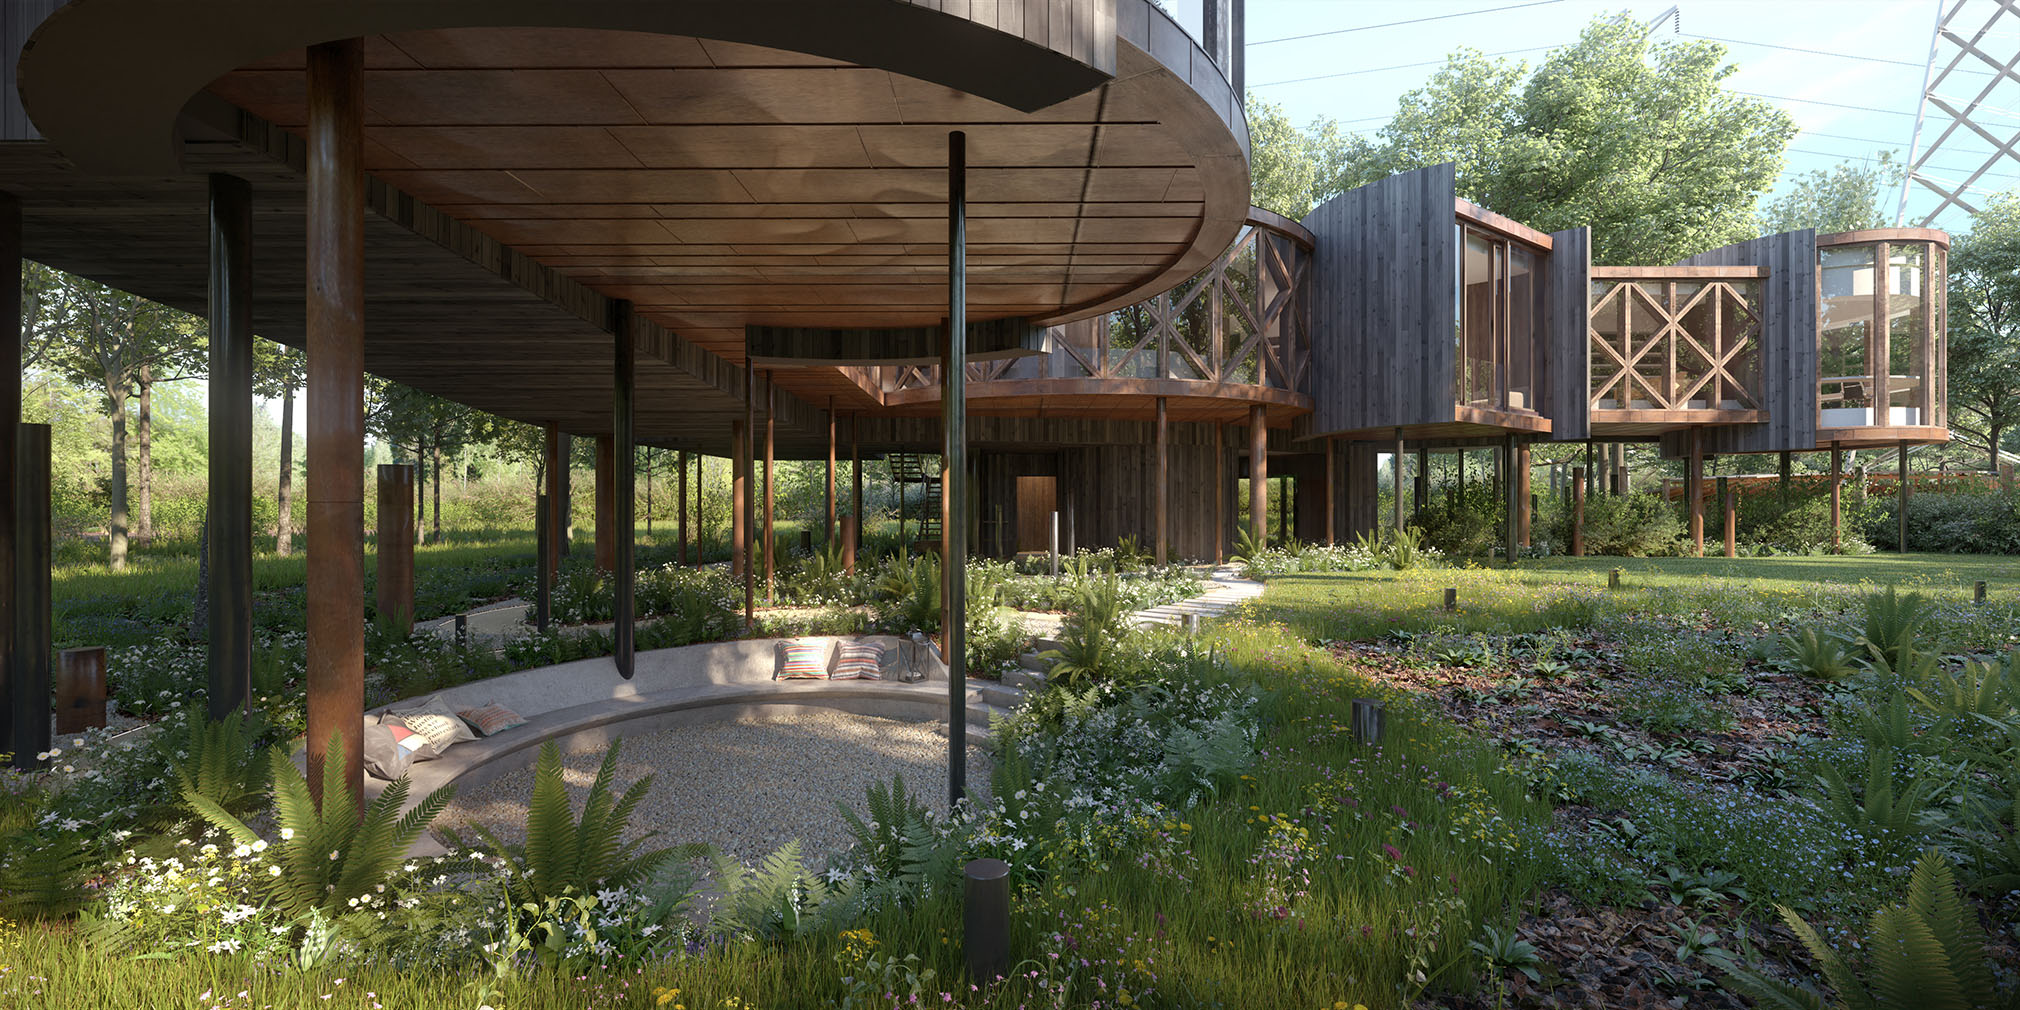 Exterior visualisation of unbuilt treehouse home with planning permission hits the market in Ewes, Gloucestershire